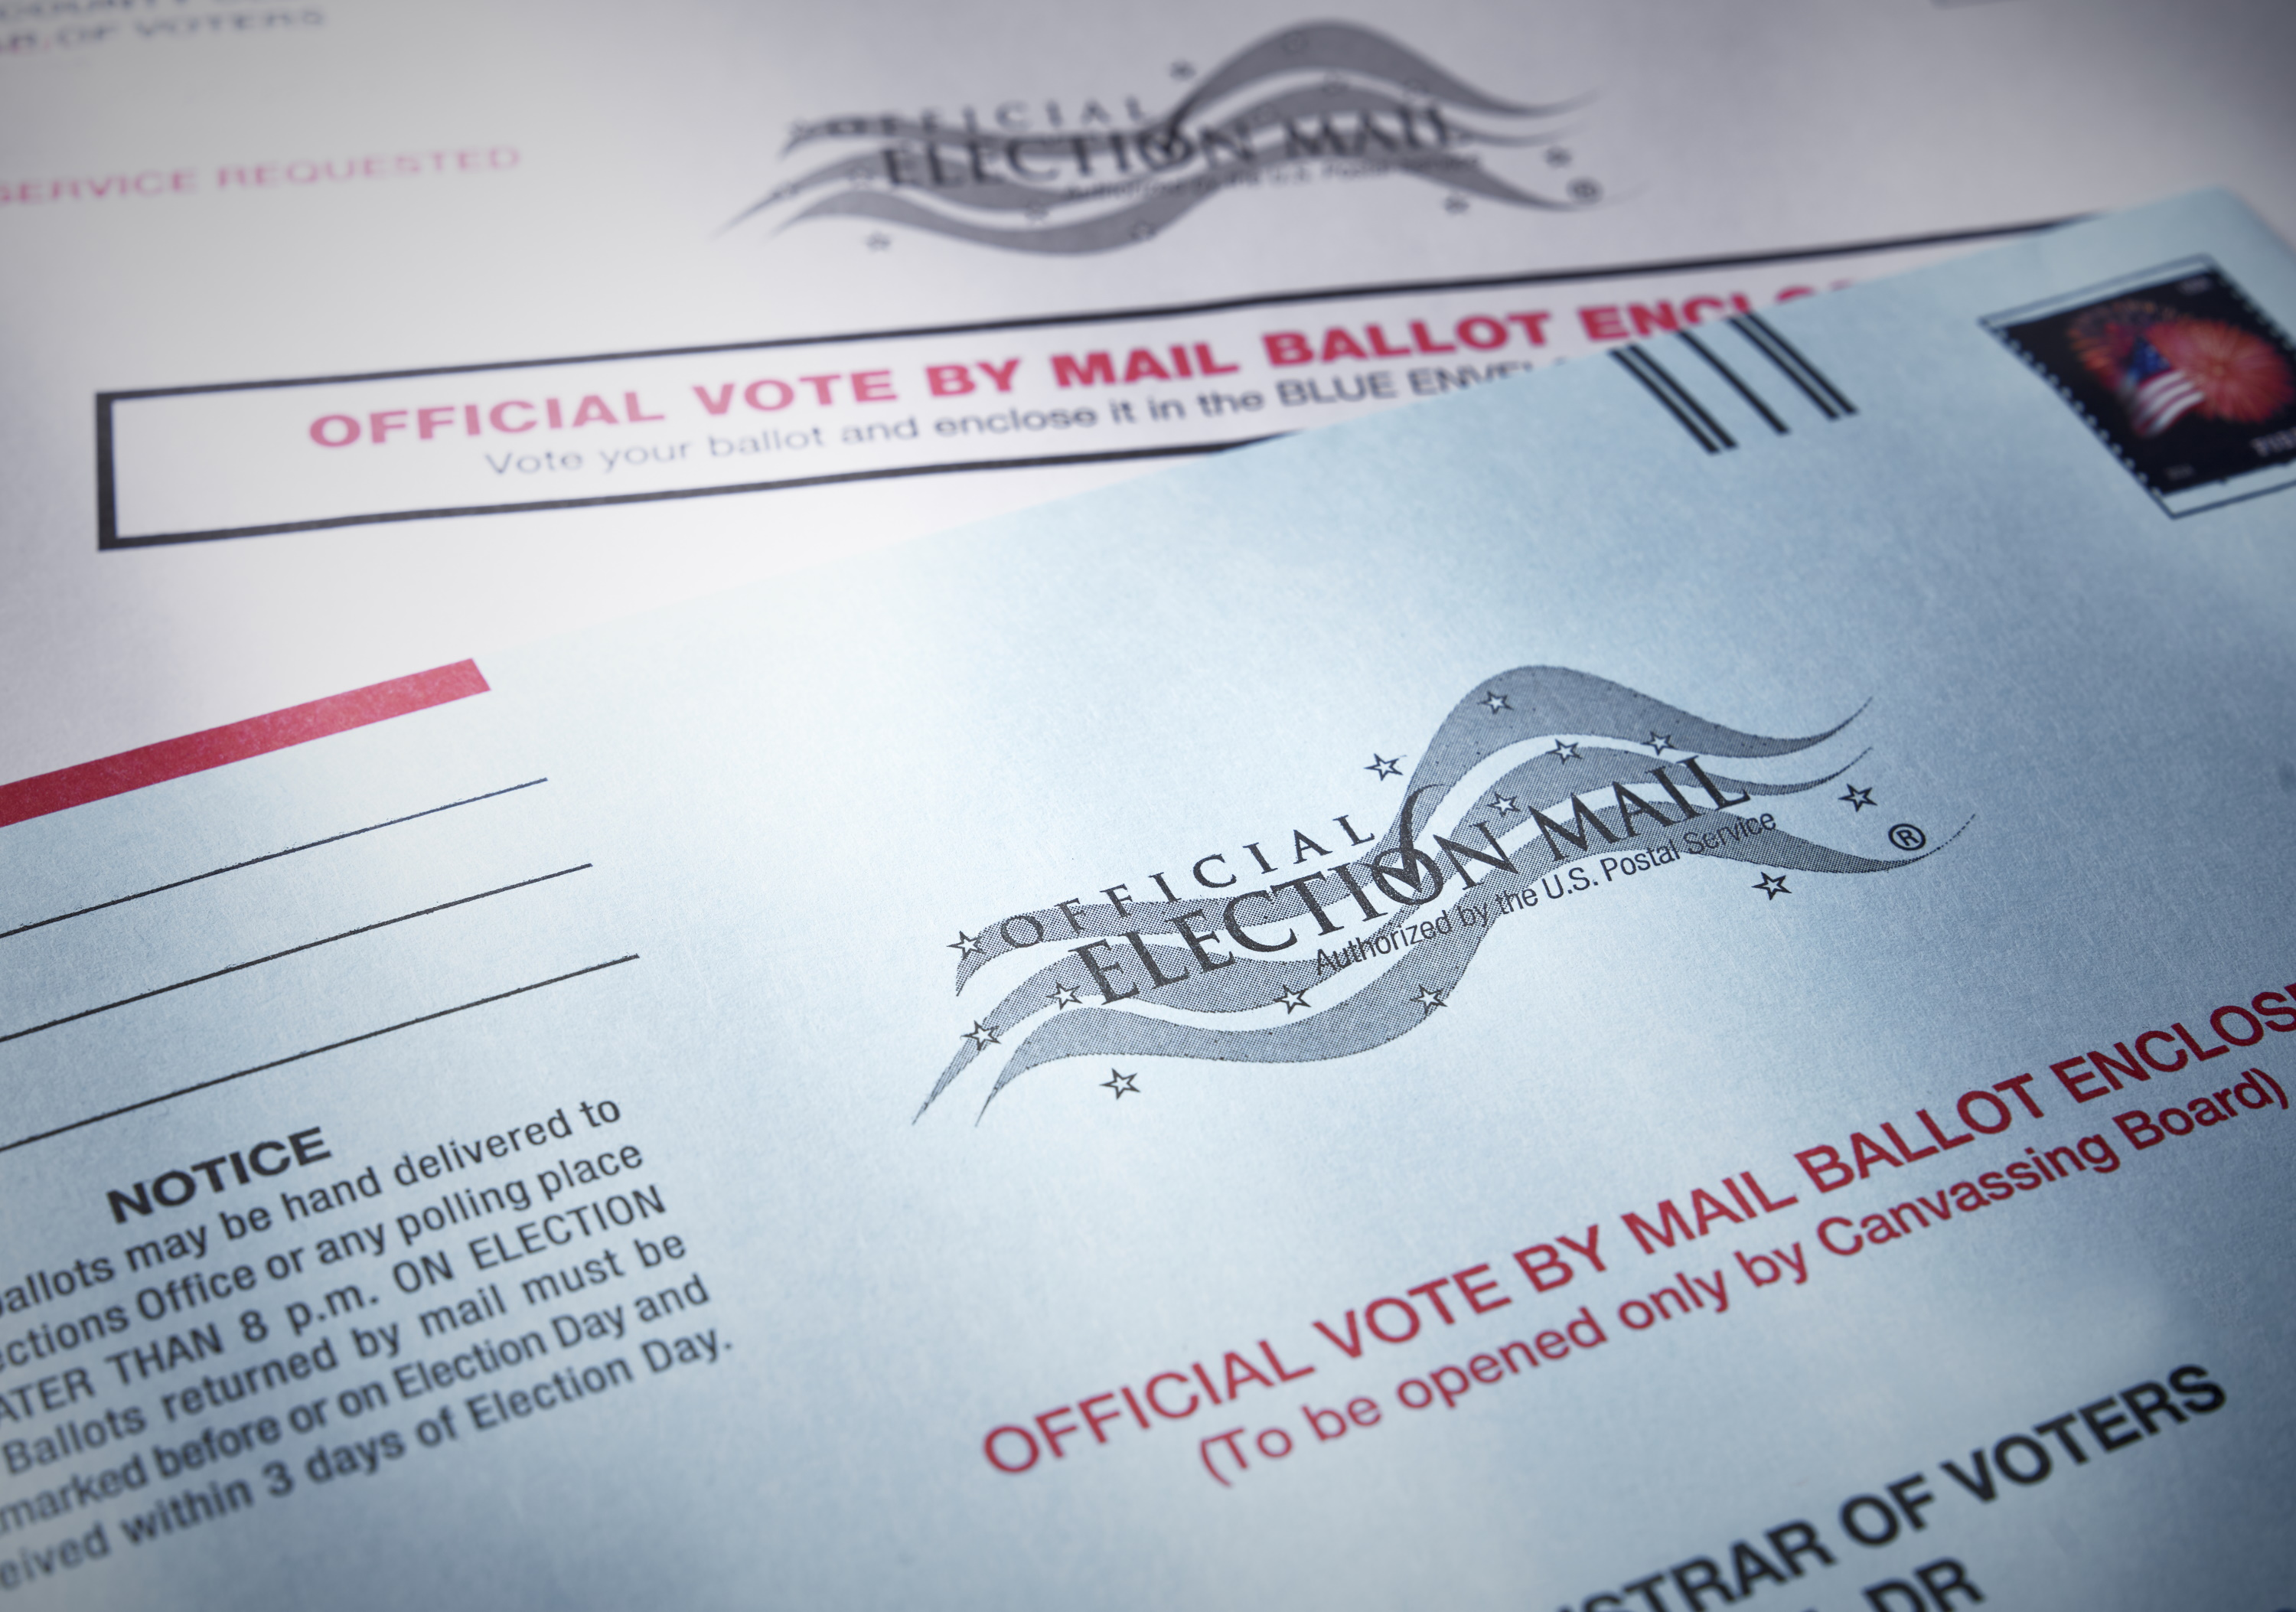 Anything less than nationwide vote by mail is electoral sabotage 2